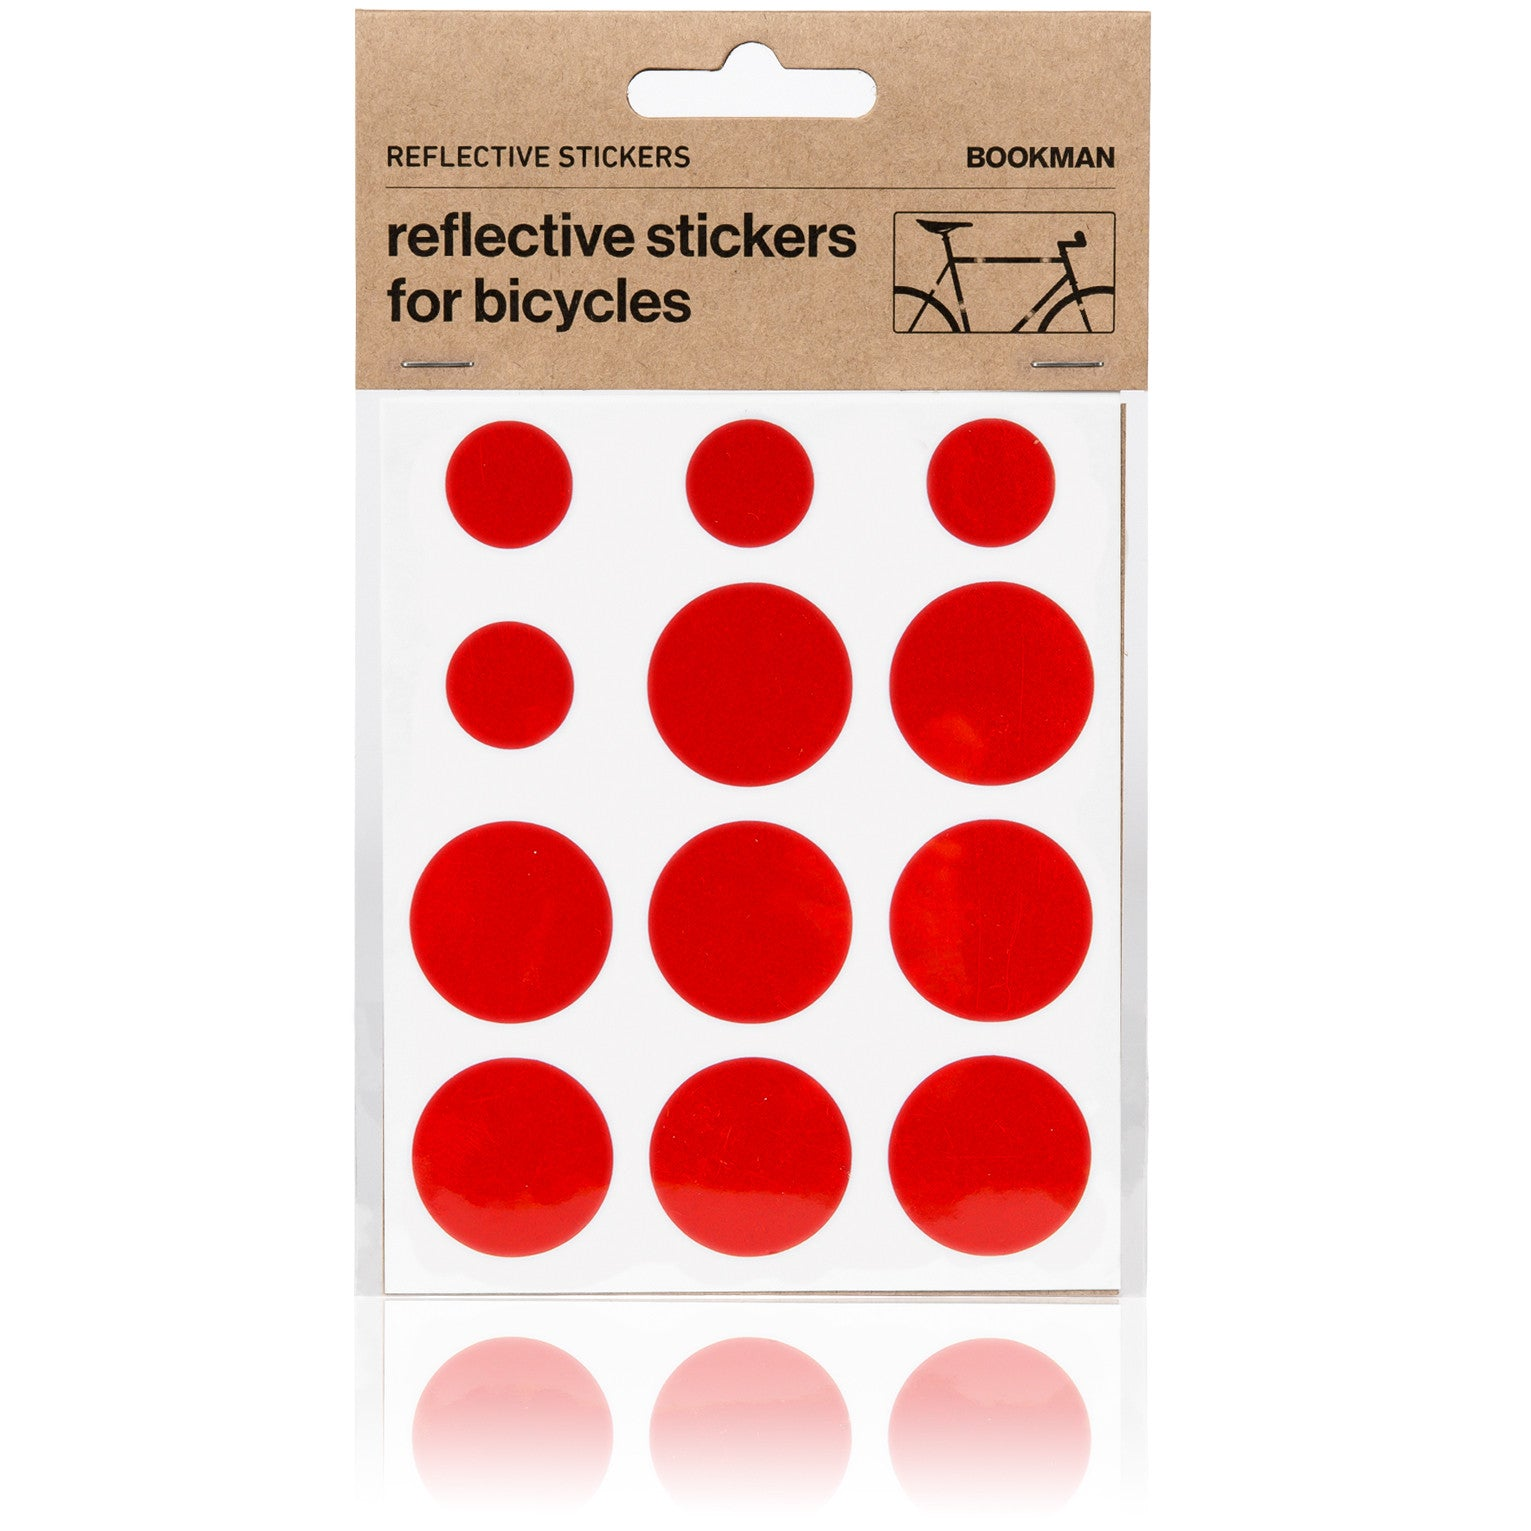 Reflective Dots Stickers for Bikes - Red | BOOKMAN